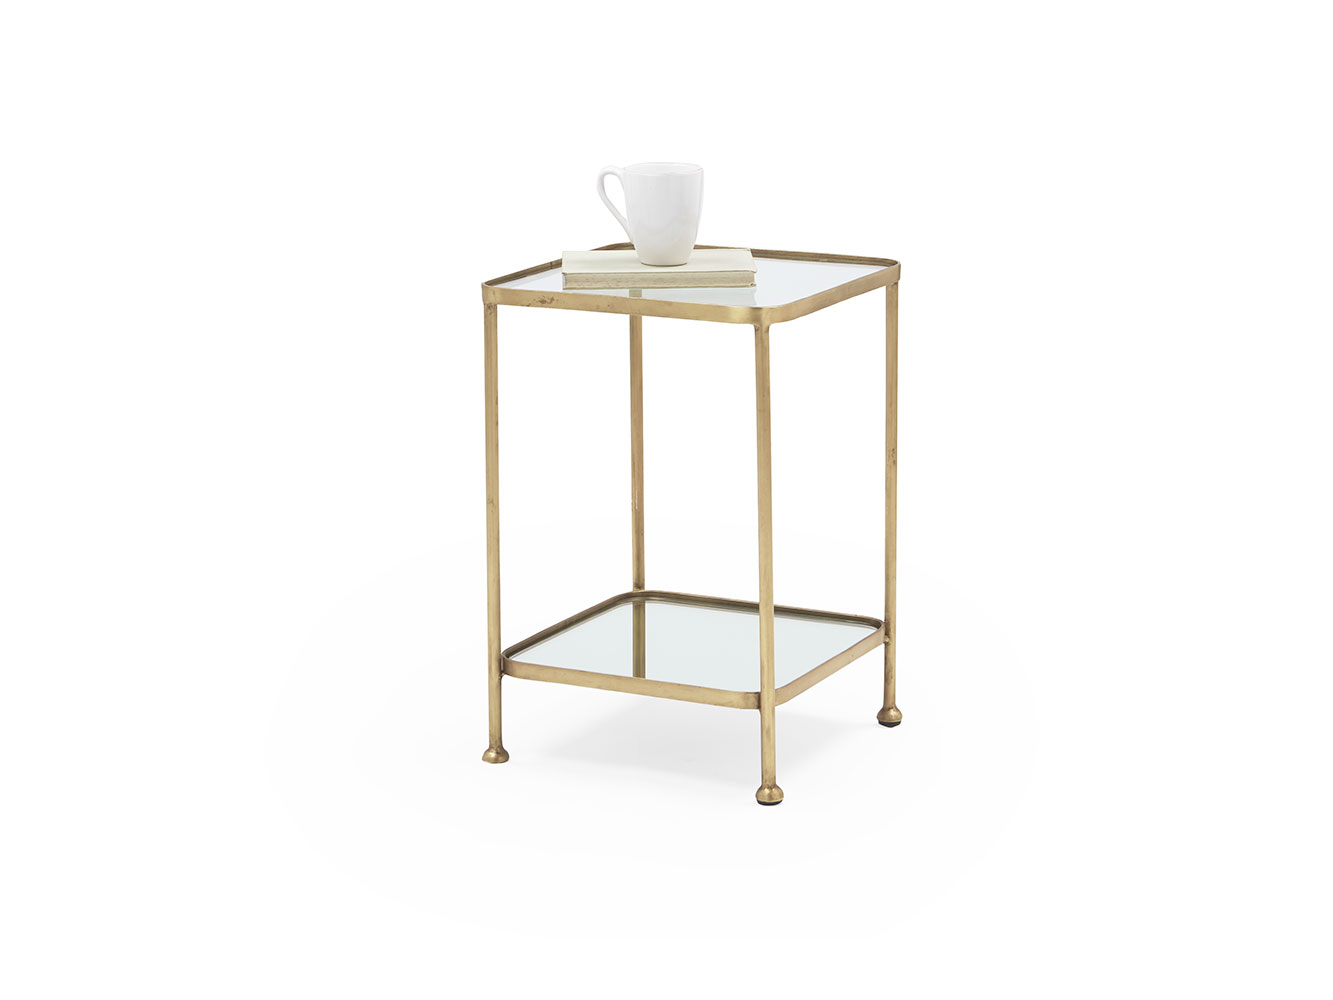 wonder brass side table and glass loaf mirrored end universal furniture inc oak black gloss chunky rustic painting old wood inexpensive big lots floor lamp magazine rack kmart